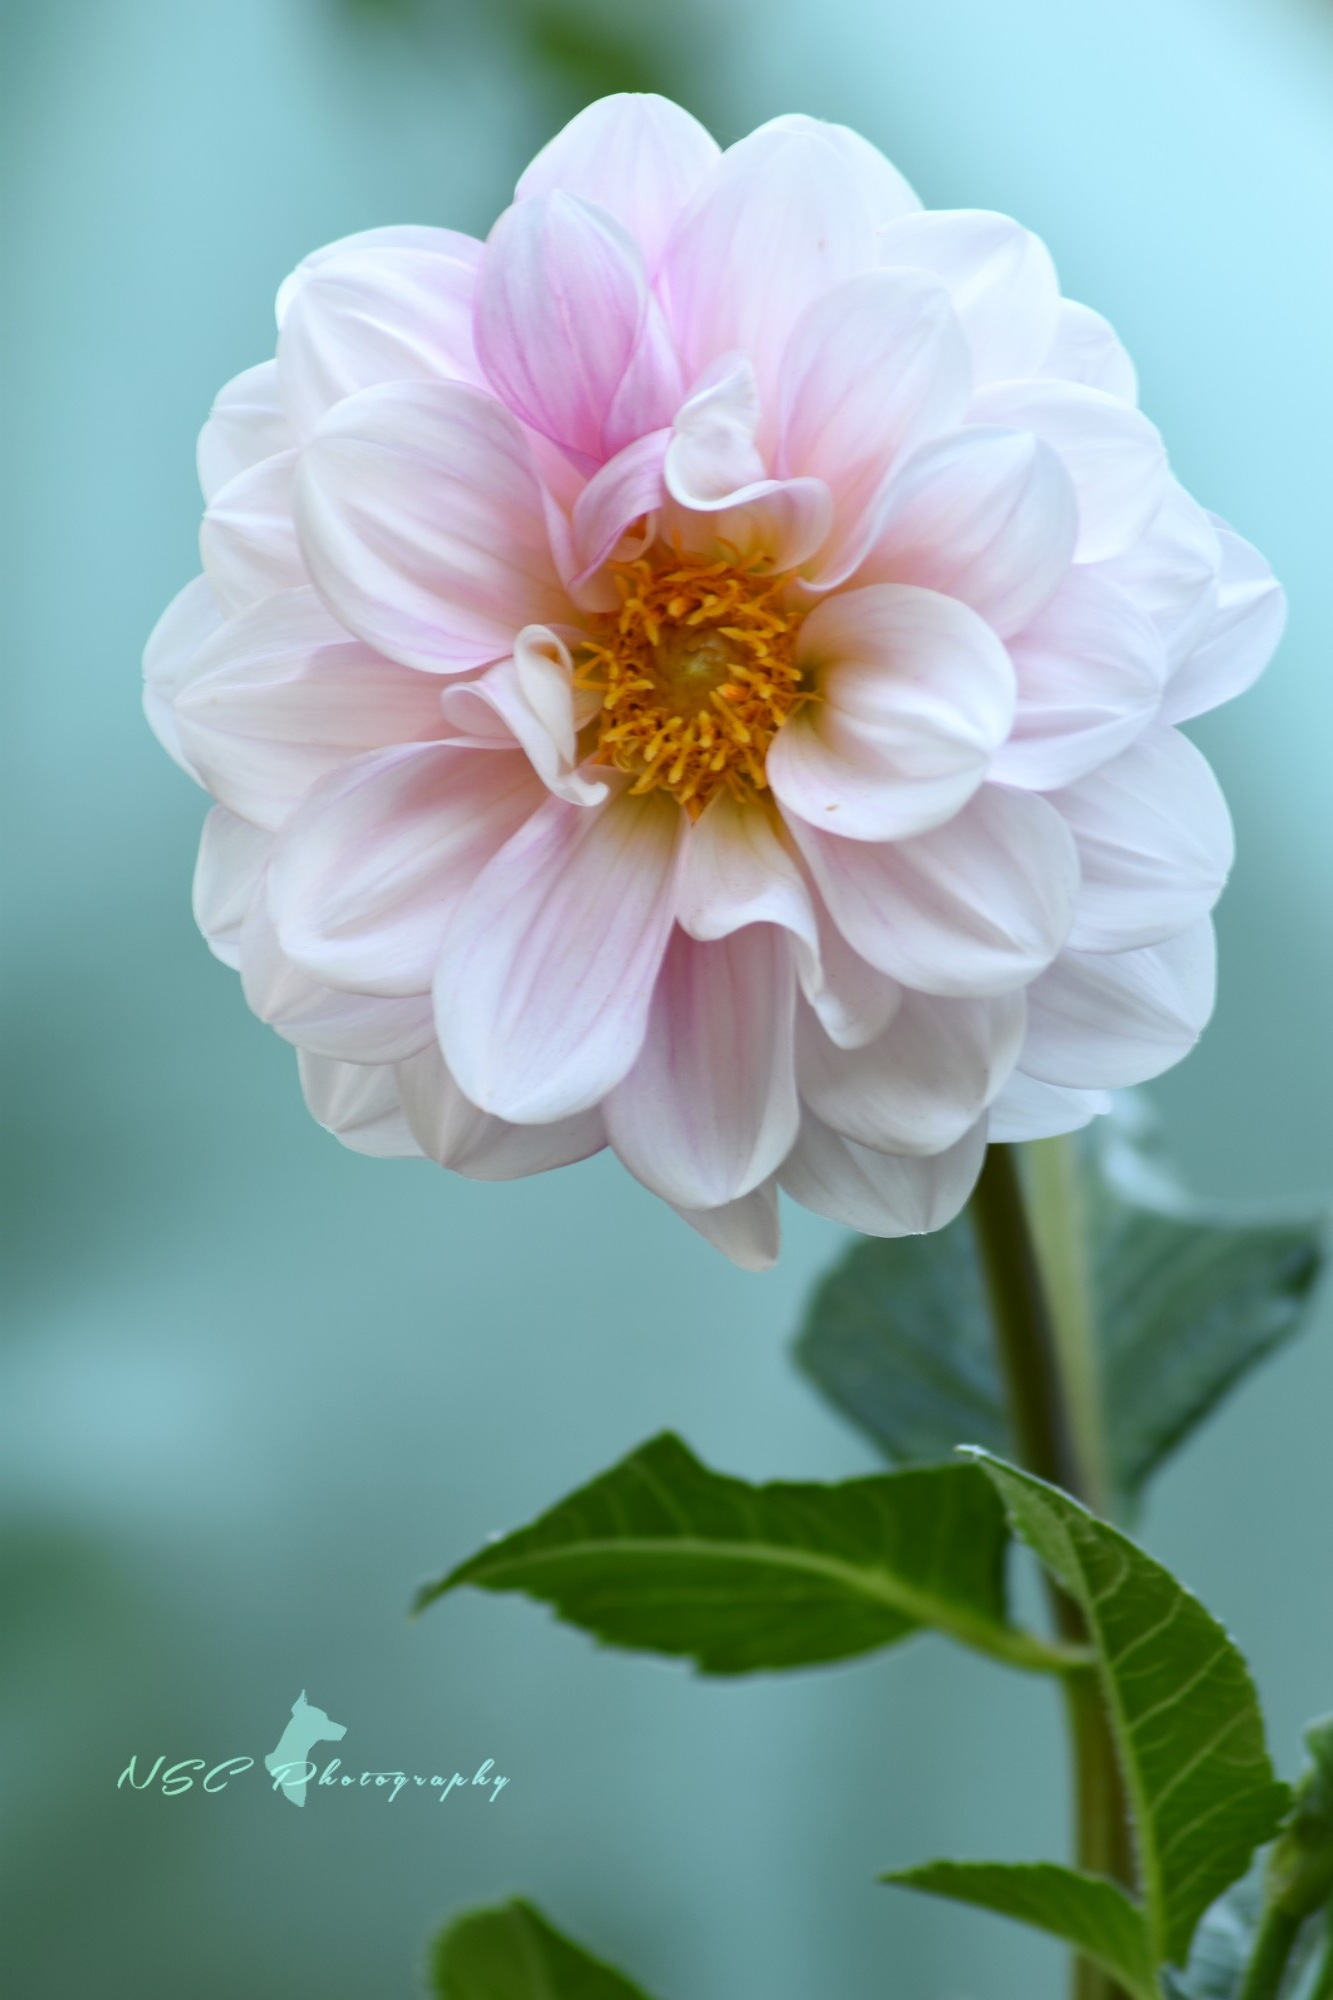 The white dahlia with its touch of pink by NSC Photography